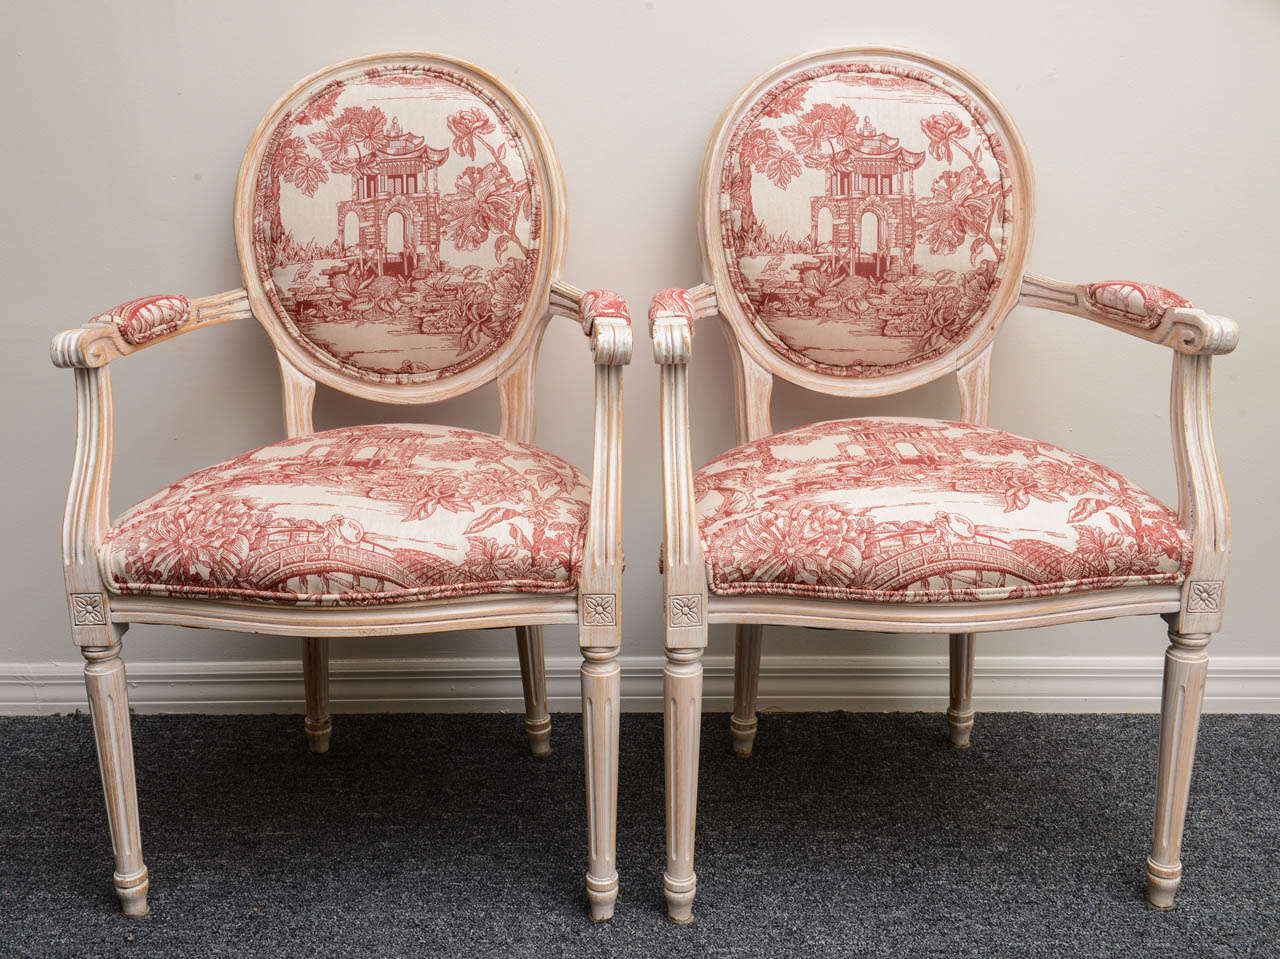 Pair French Louis XVI Style Armchairs Upholstered in a Red Chinoiserie Fabric 2